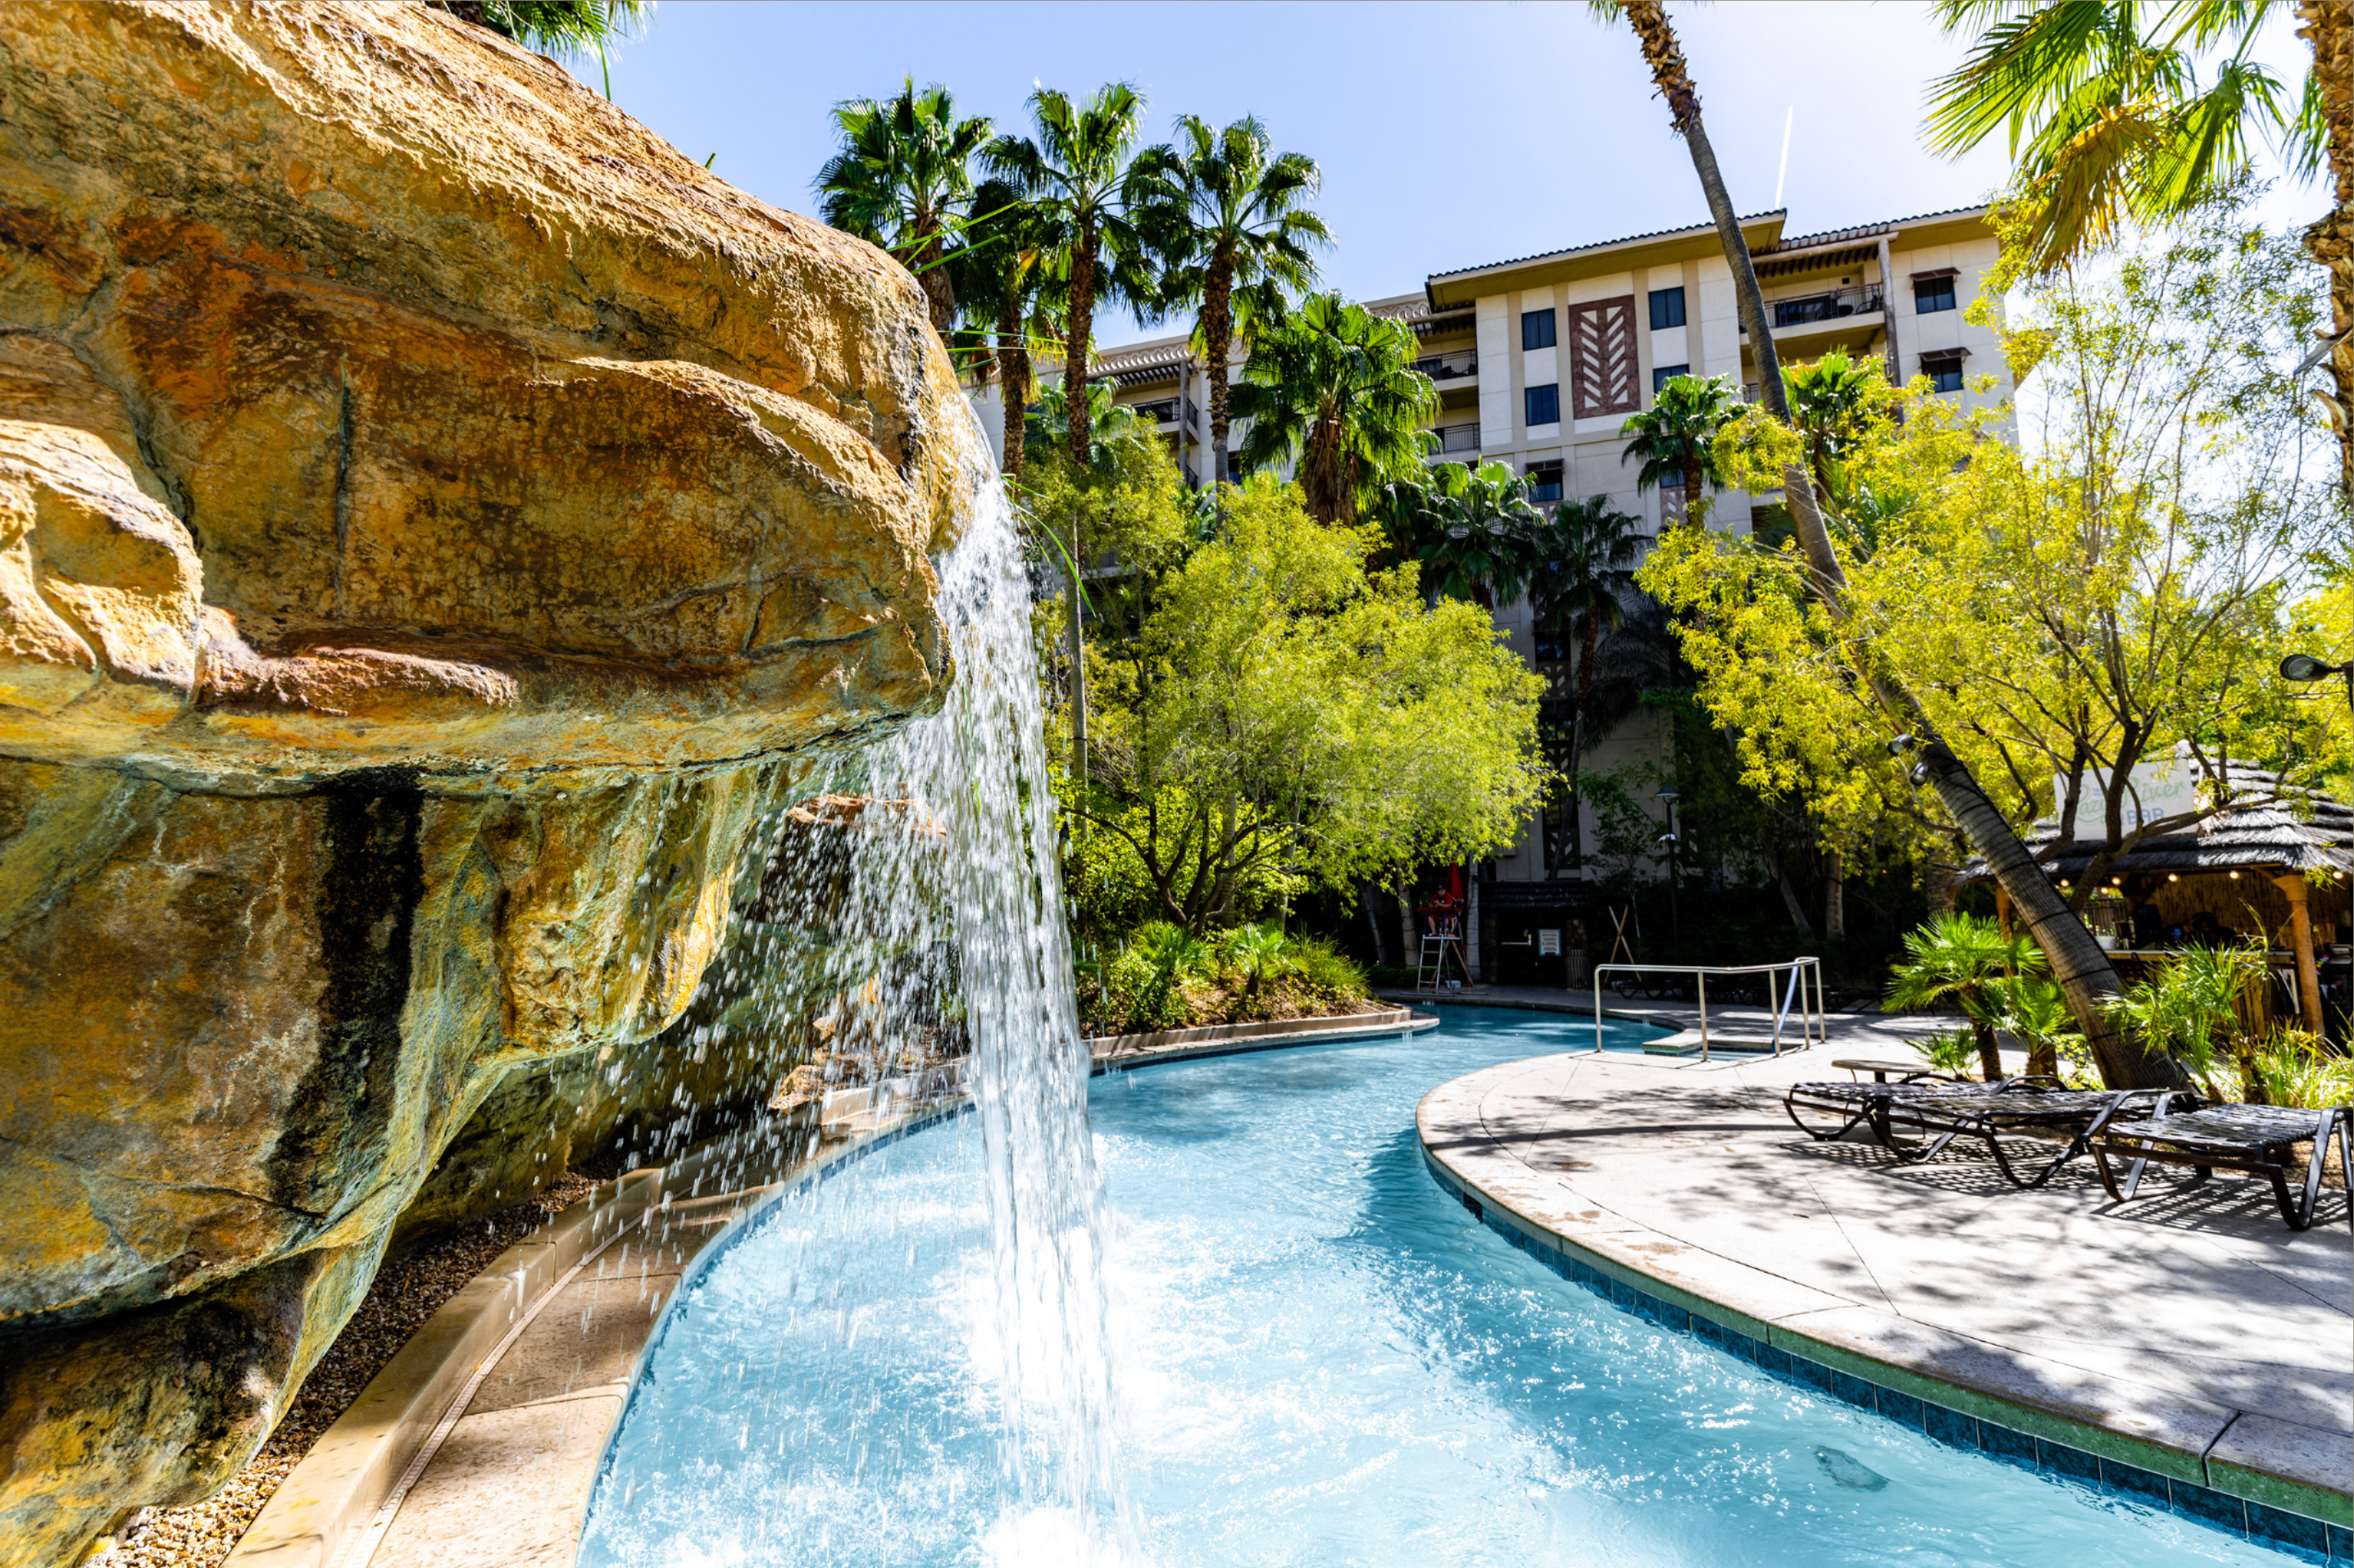 Tahiti Village Las Vegas lazy river discount vacation